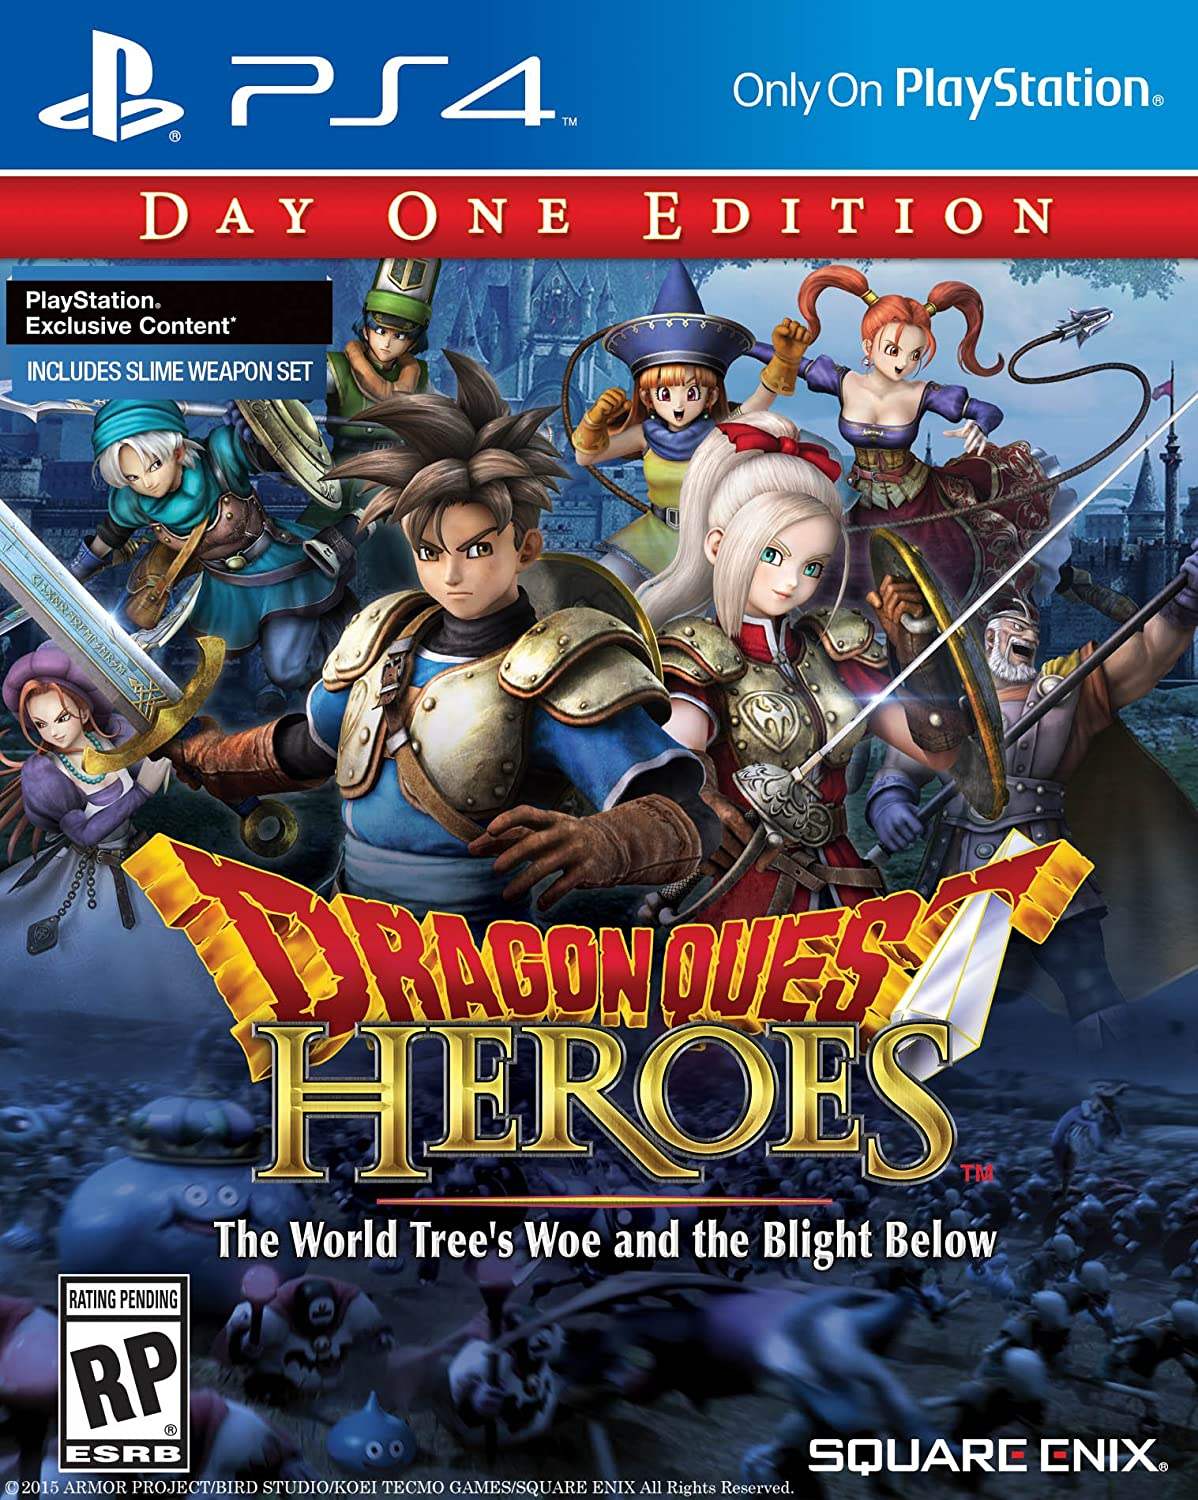 Dragon Quest Heroes: The World Tree's Woe and the Blight Below chris wormell george and the dragon